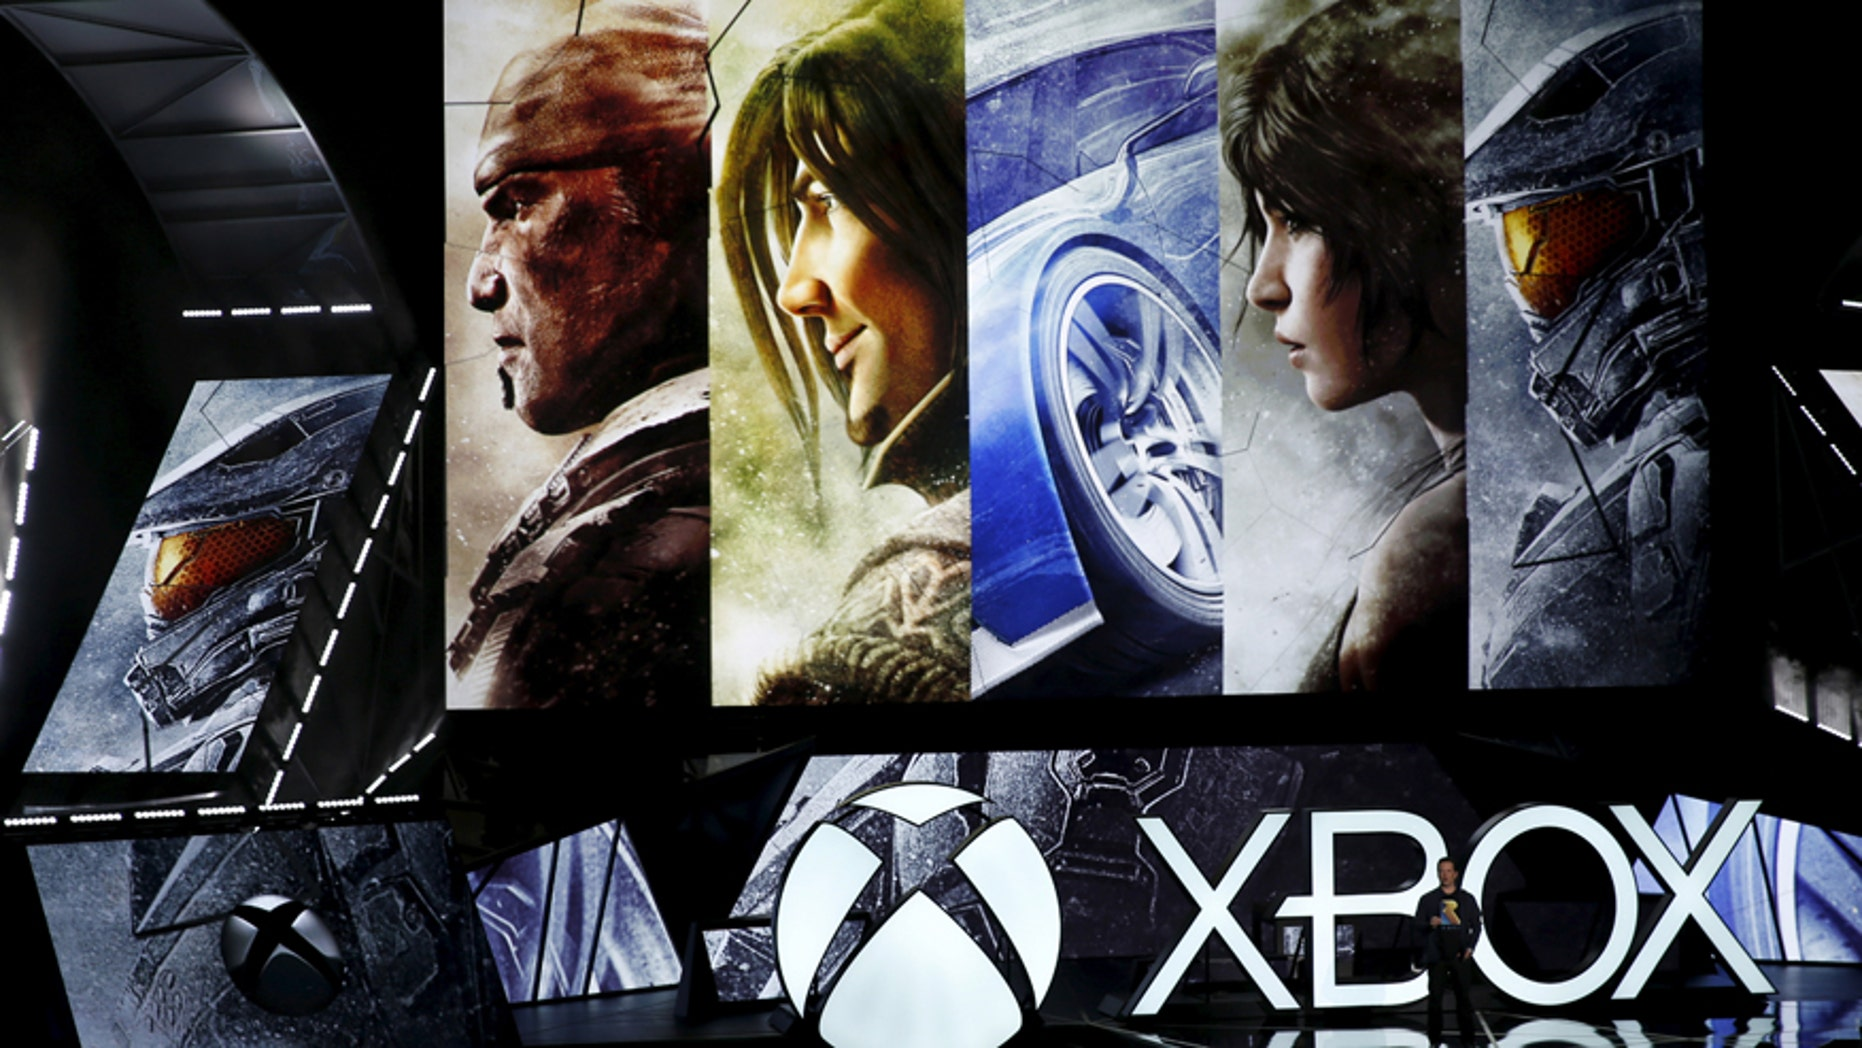 Phil Spencer, head of Xbox, talks about backwards compatibility to play all Xbox 360 games on the Xbox One during game publisher Microsoft's Xbox media briefing before the opening day of E3, in Los Angeles, Calif, June 15, 2015.